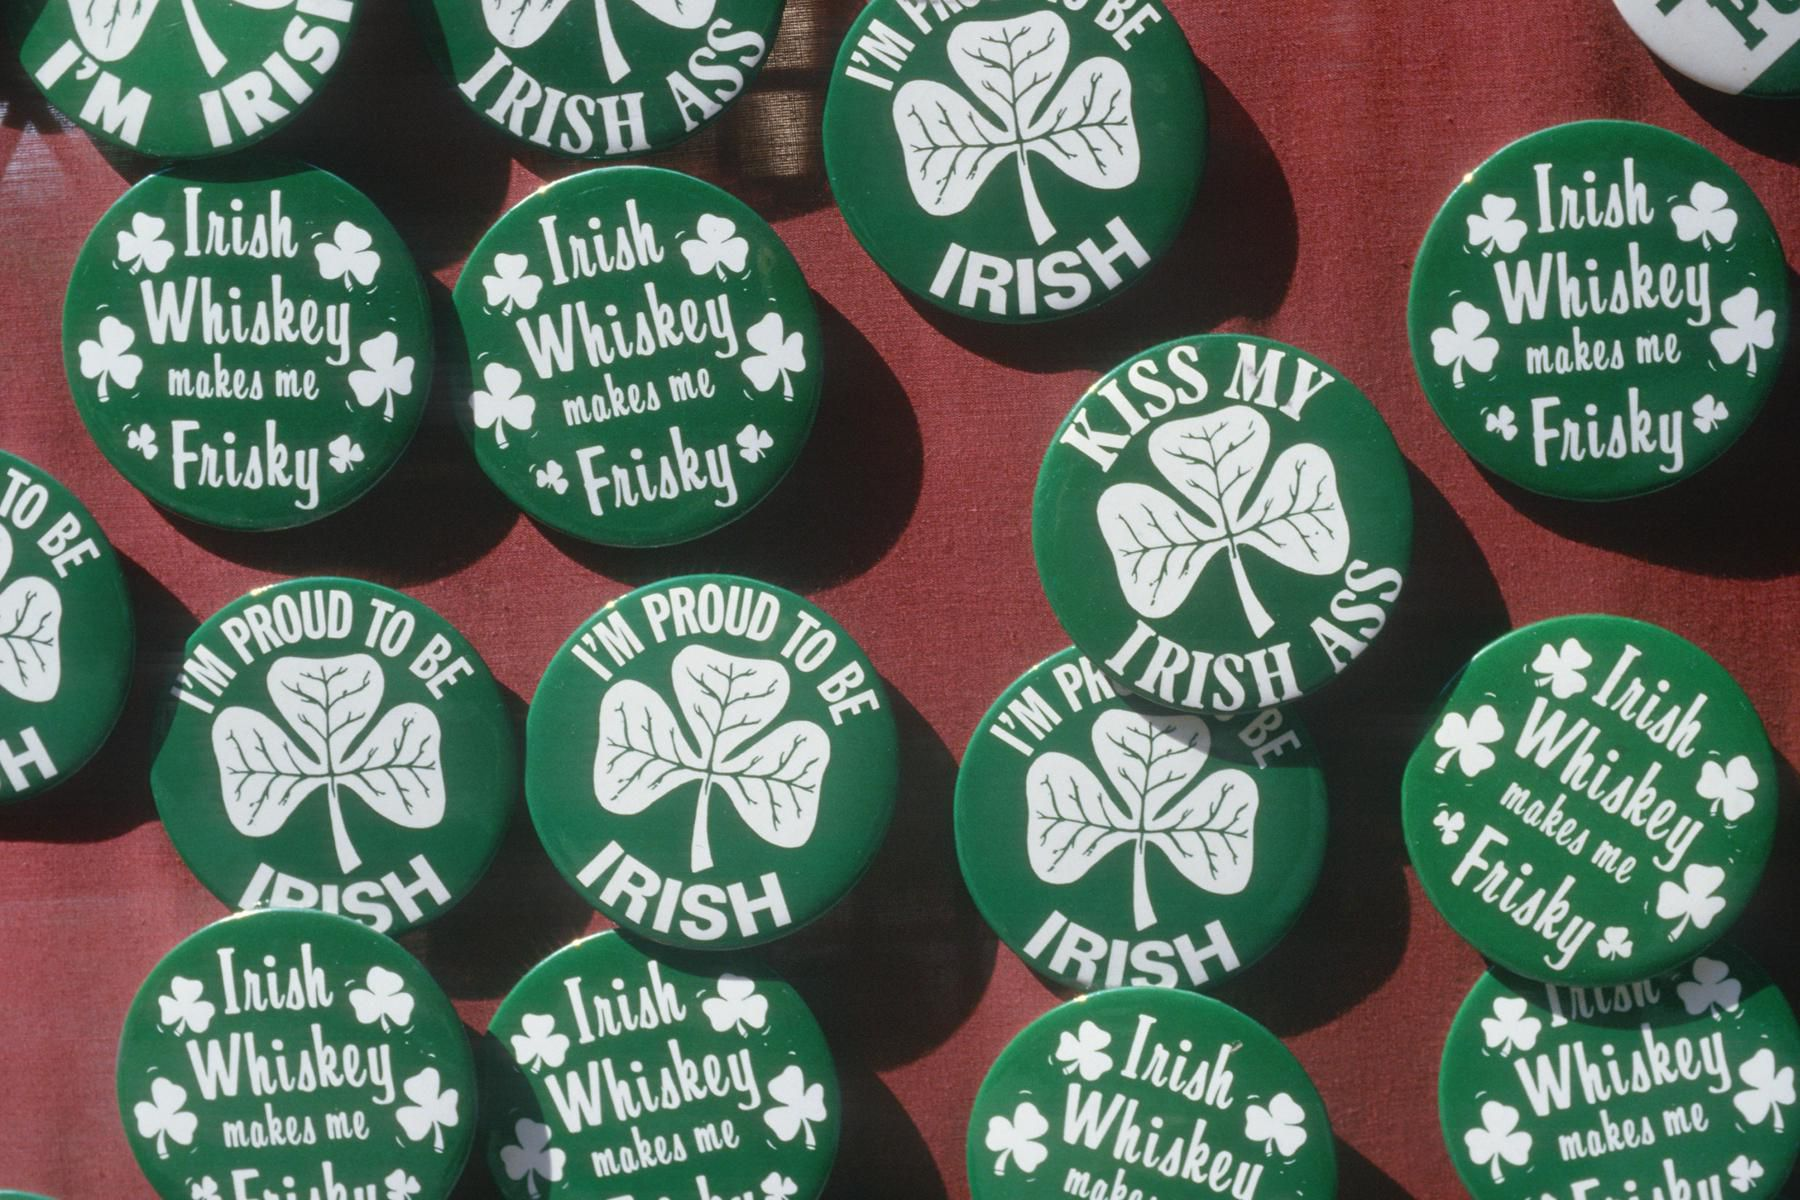 Famous Irish Quotes About Life 11 Funny Stpatrick's Day Quotes And Toasts